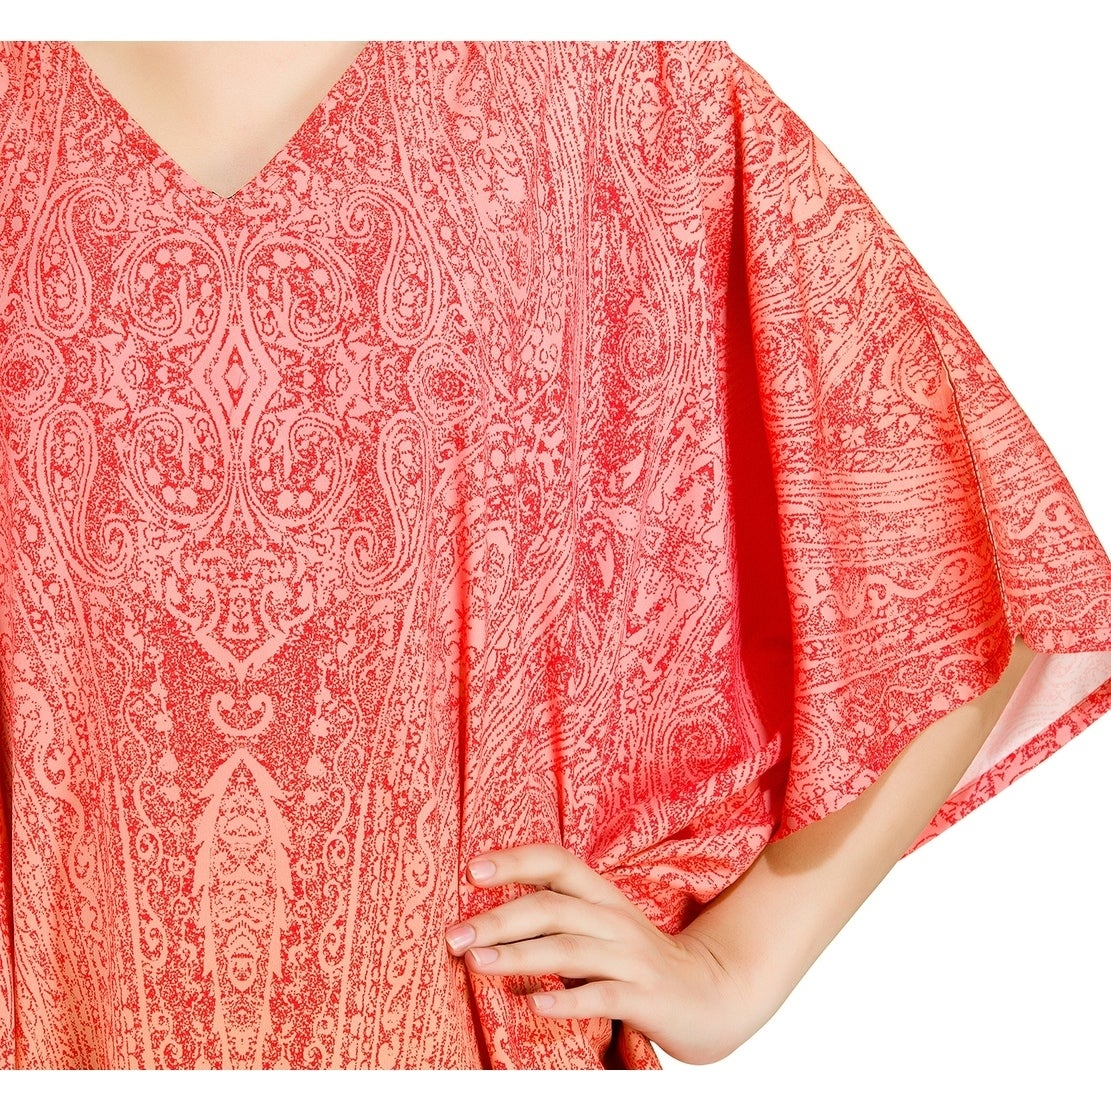 9379ceac72c Shop Red Tunic Top Abstract Kaftan Plus Size Caftan Maxi Coverup Summer  Long Casual Party Dress Women - Free Shipping Today - Overstock - 21731677